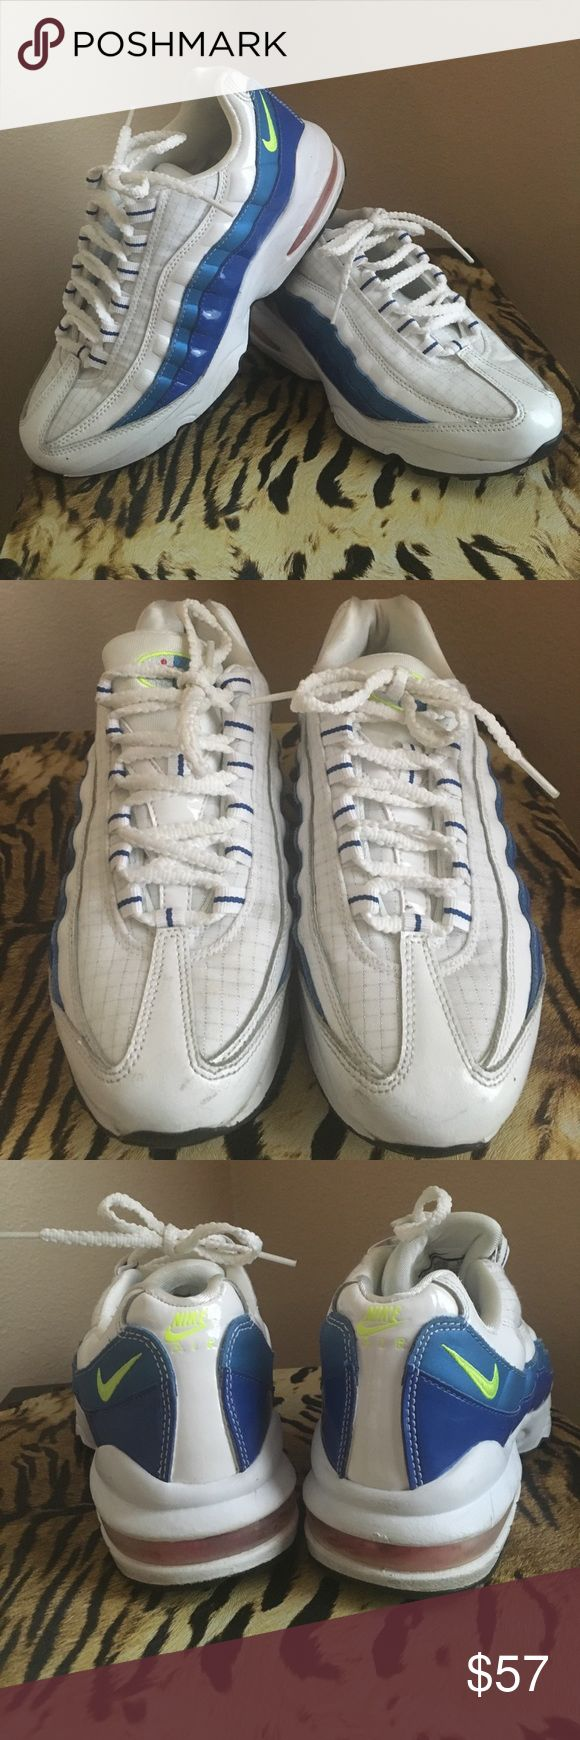 Nike Air Max 95 ( Size 5.5 Y) Nike Air Max are barely worn. In great condition although there are minor scuff marks on toe  area of each shoe.  Color: White, blue, neon swoosh. Nike Shoes Sneakers